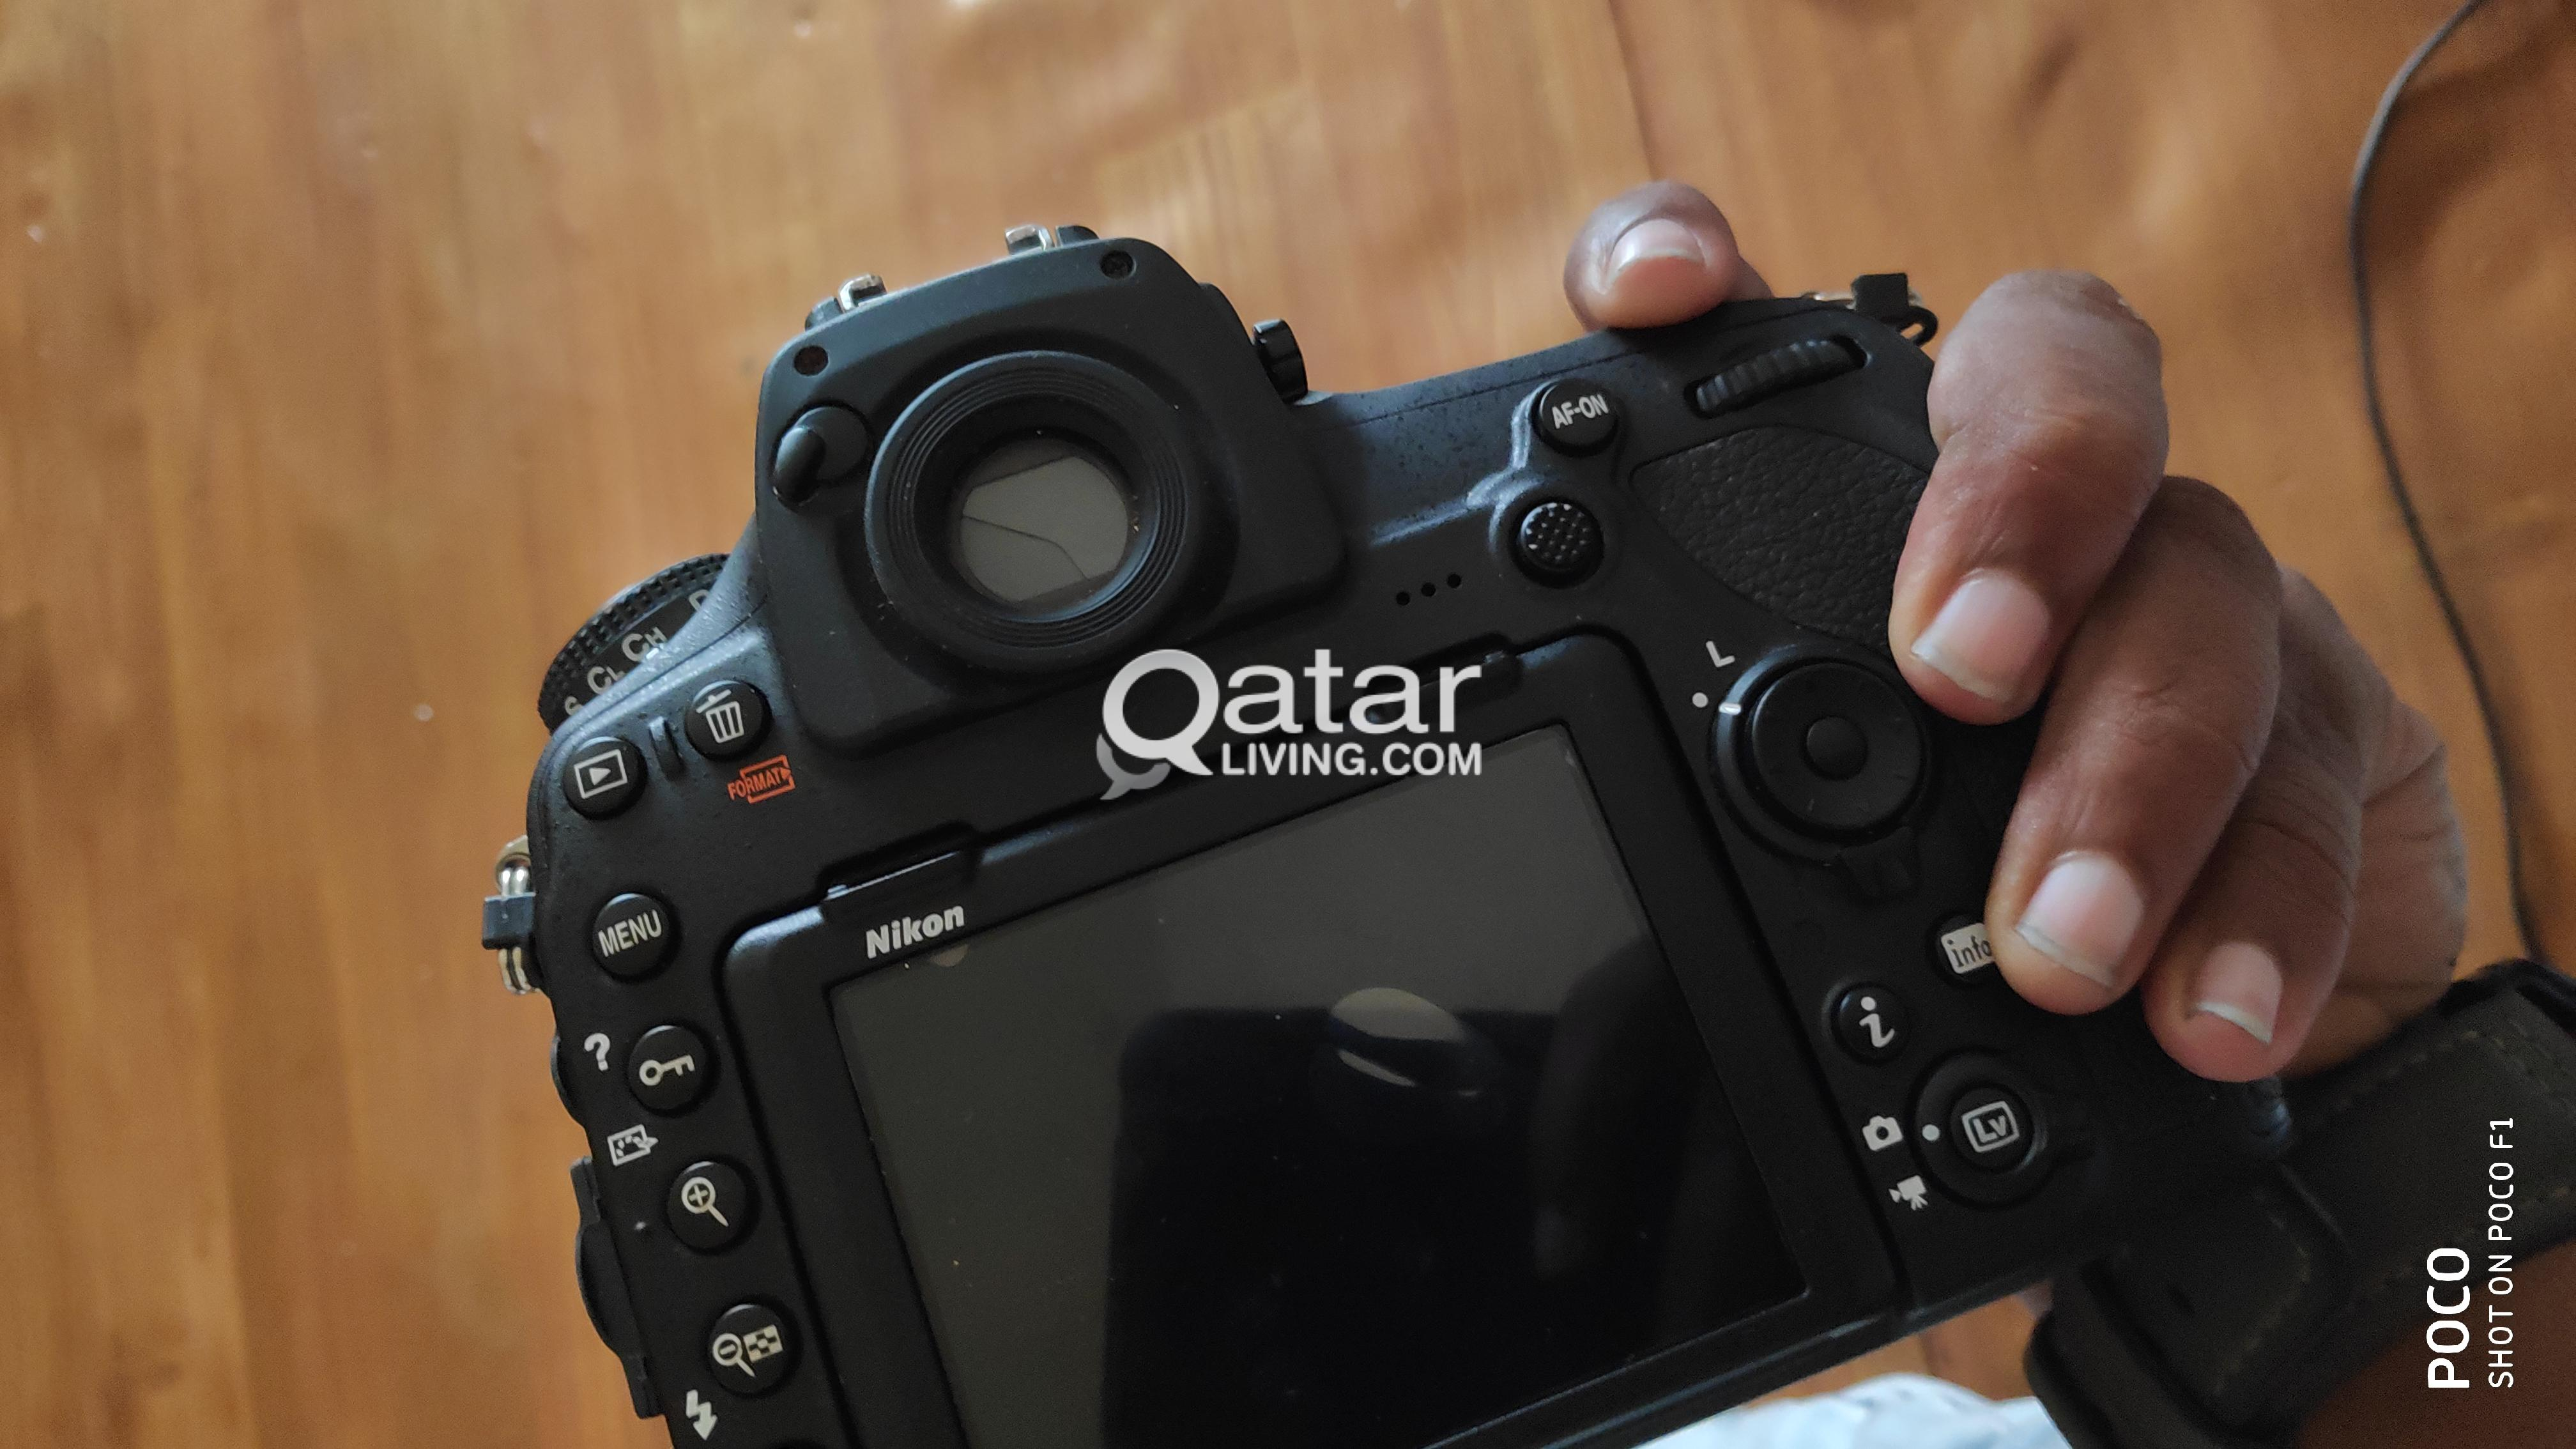 Nikon d850 used in perfect condition | Qatar Living